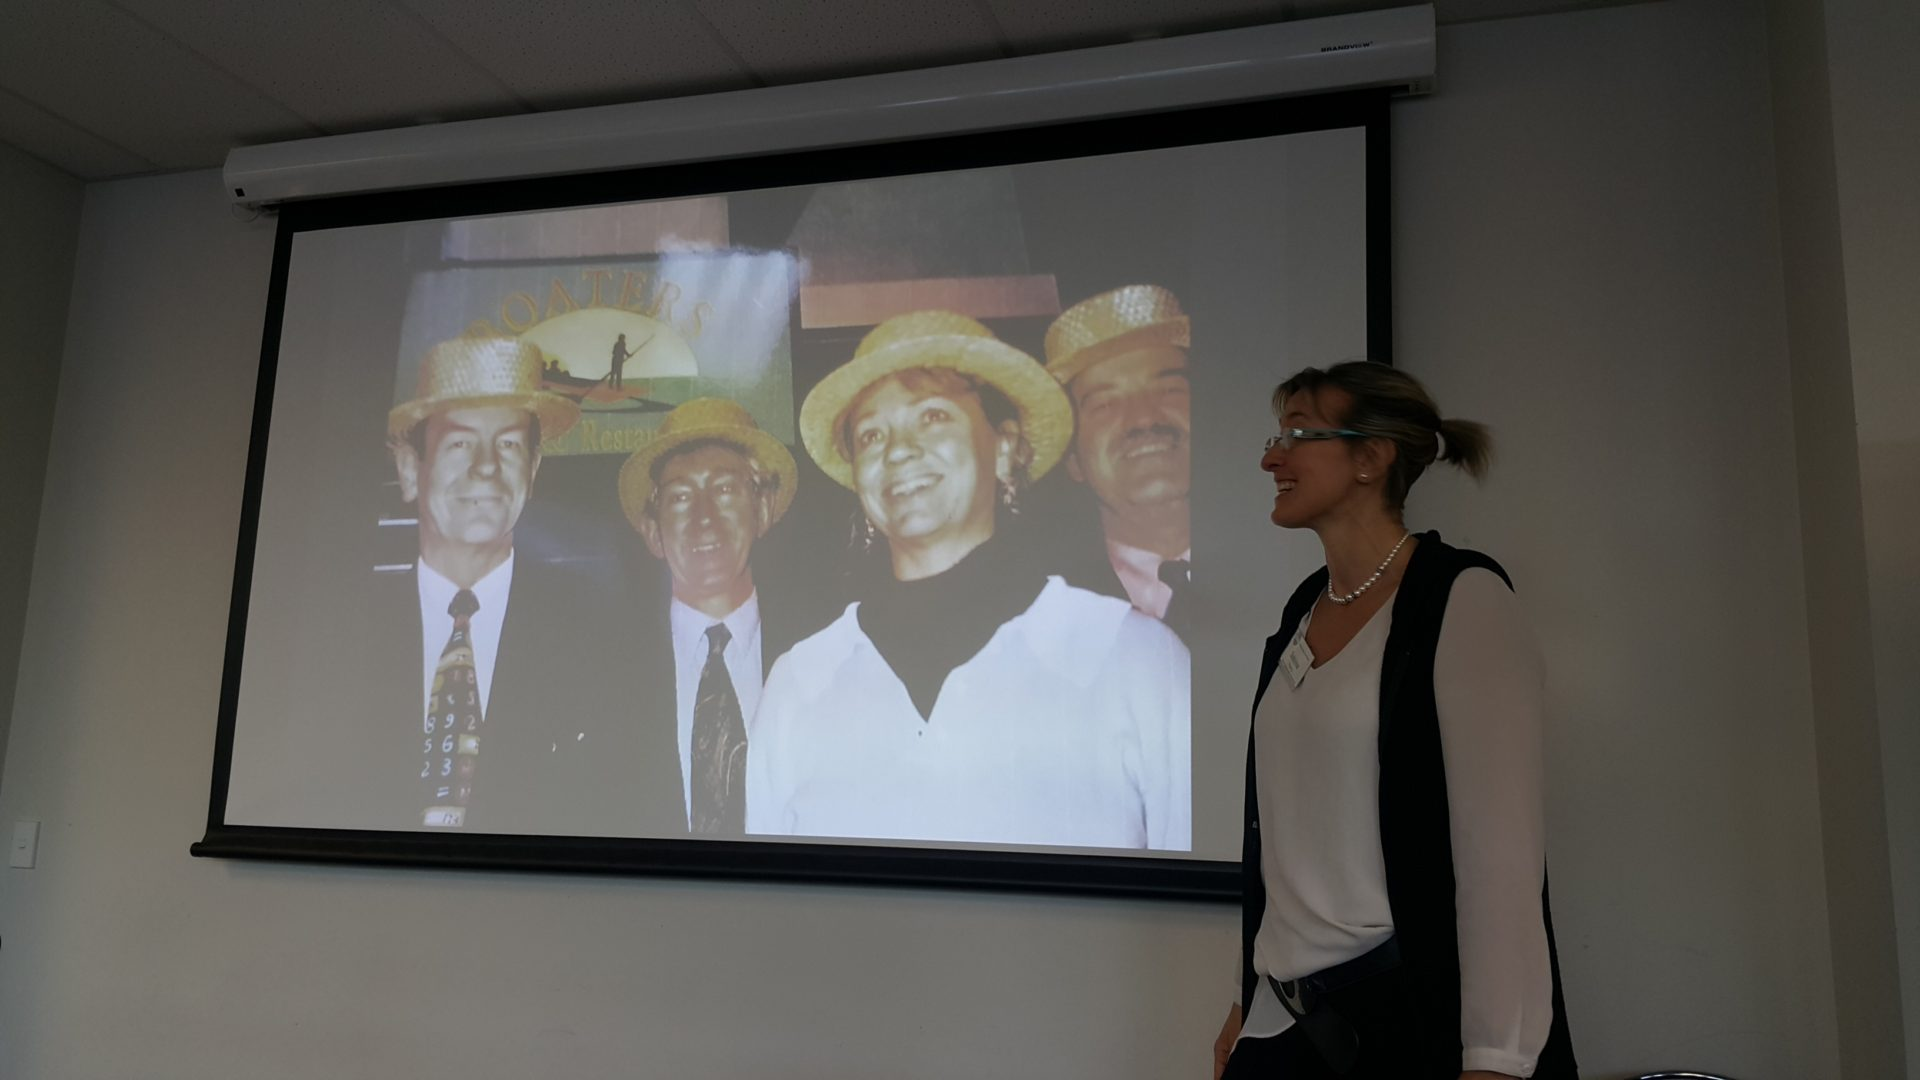 woman presenting a slide showing a group of four people